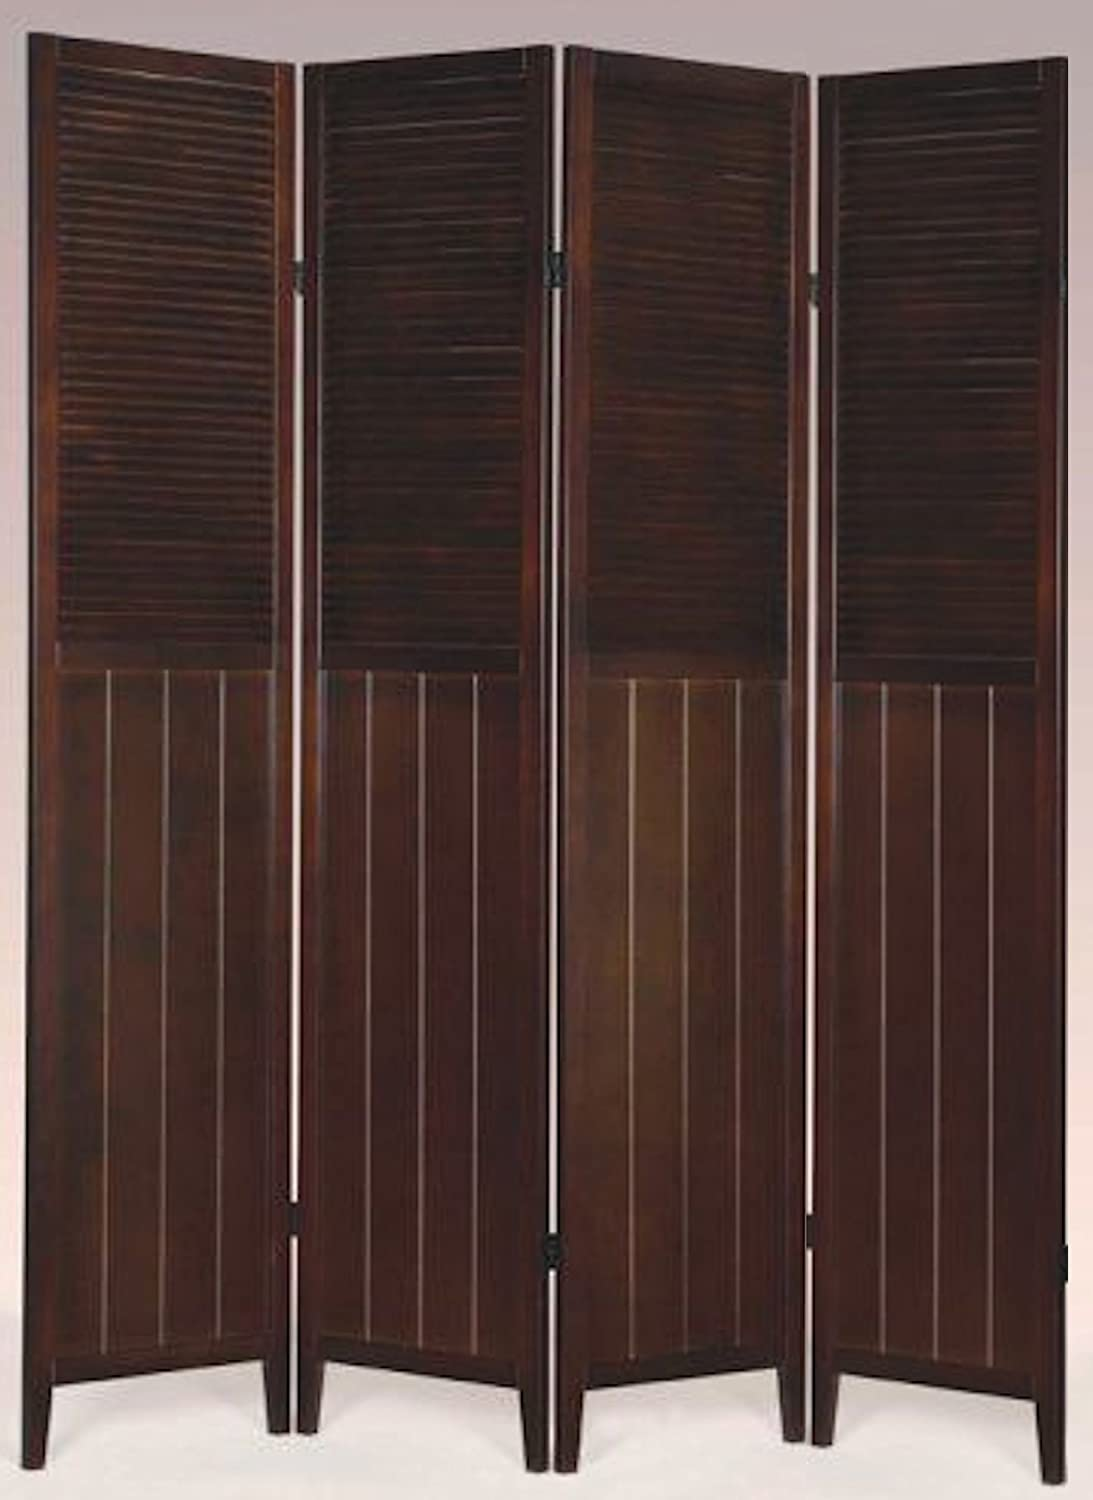 Amazon com legacy decor 3 or 4 panel wood room divider white espresso finish espresso 3 panel kitchen dining